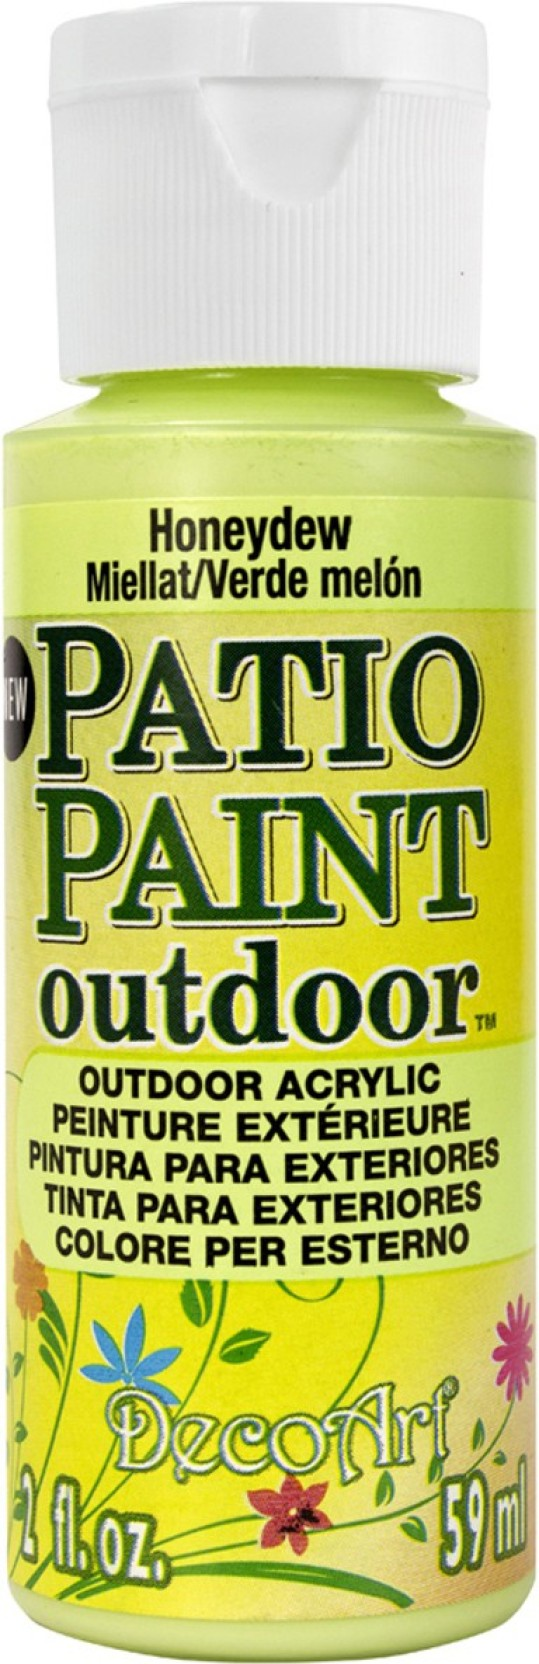 Remarkable Deco Art Patio Paint 2Oz Hone Yard Ew Patio Paint 2Oz Download Free Architecture Designs Embacsunscenecom